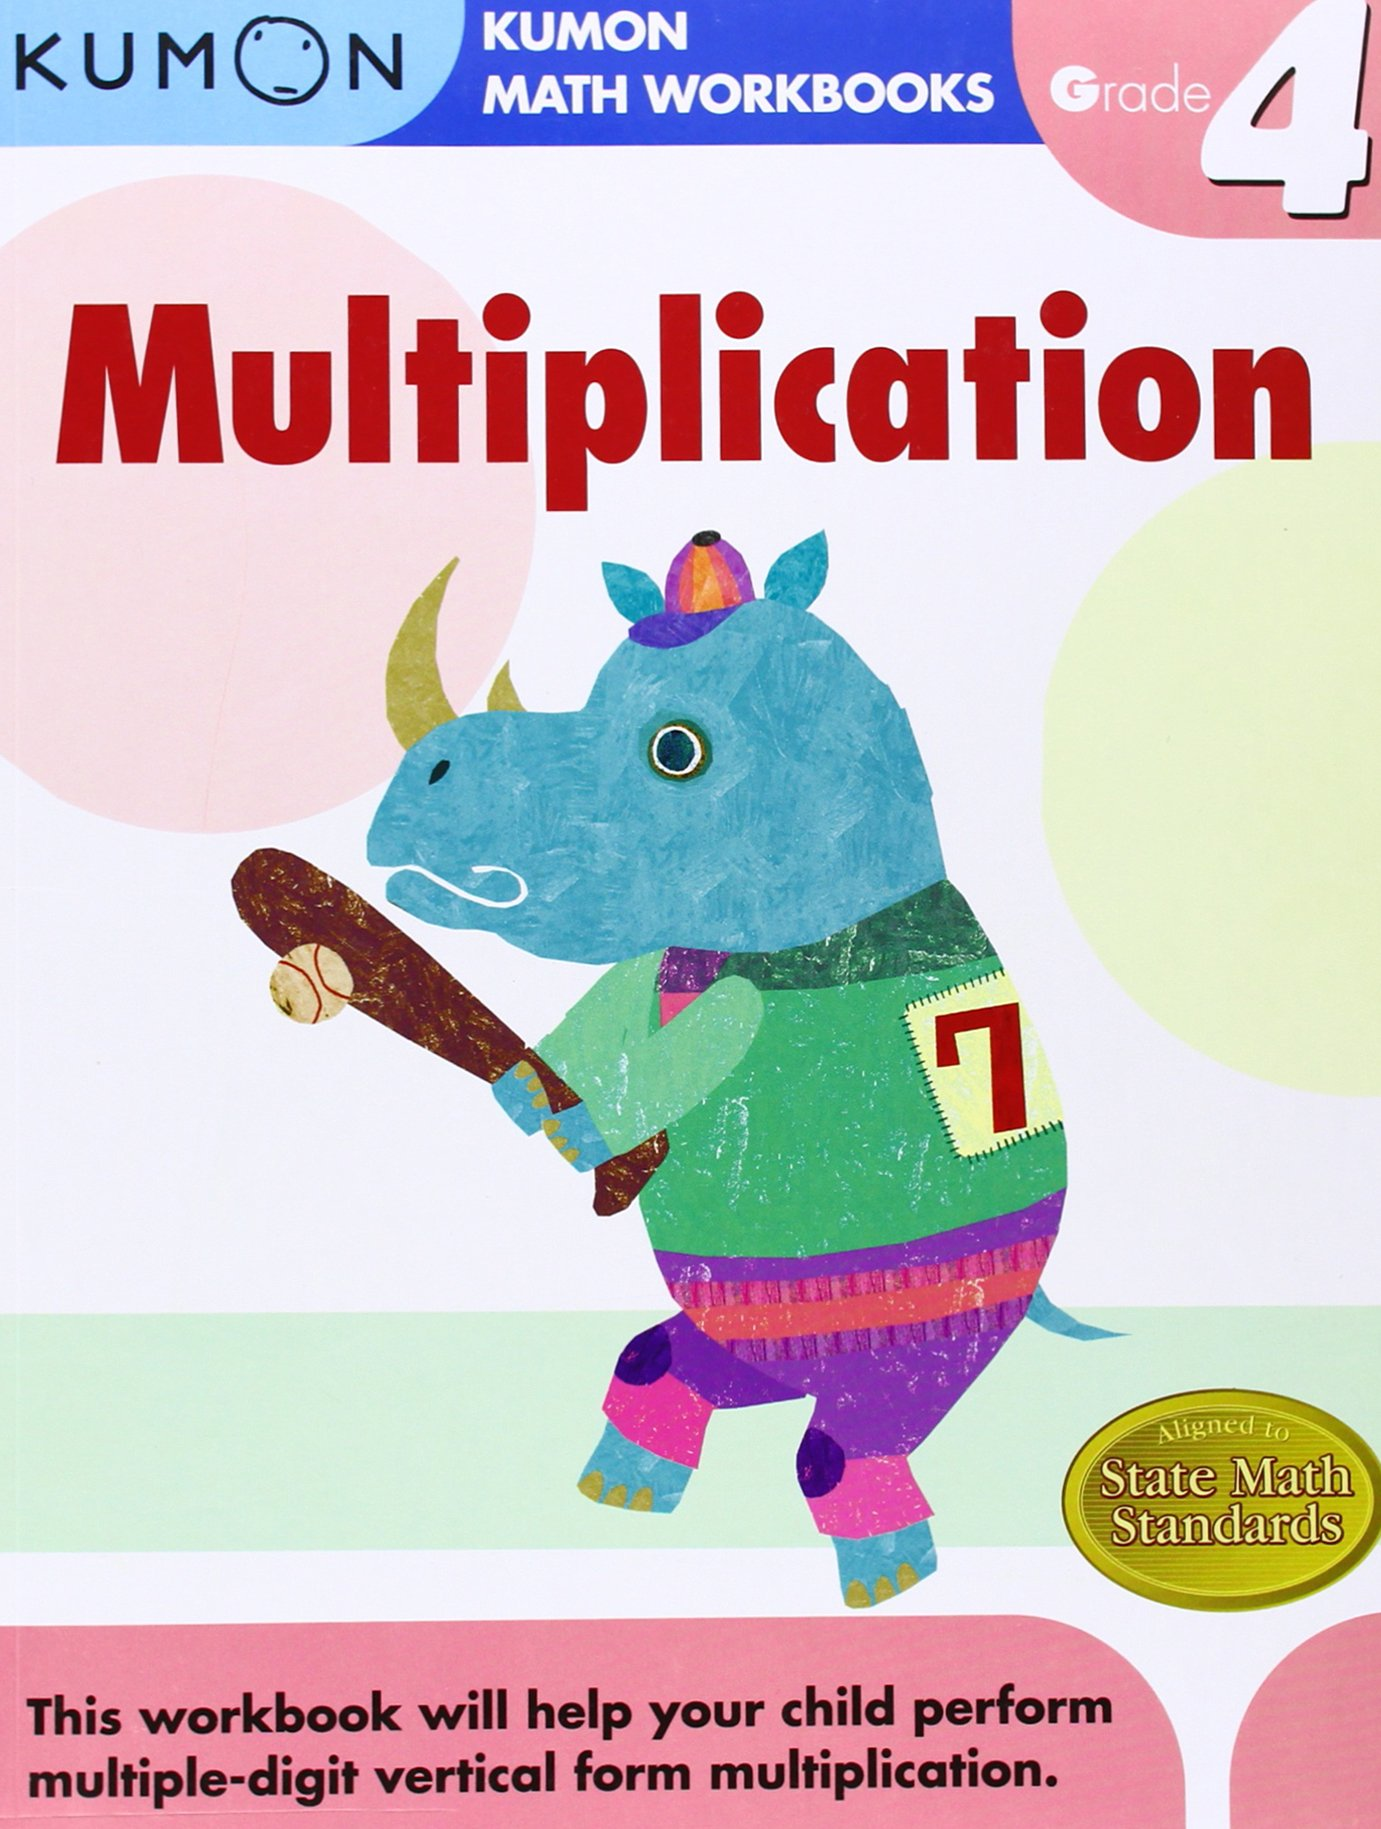 Buy Grade 4 Multiplication (Kumon Math Workbooks) Book Online at Low ...